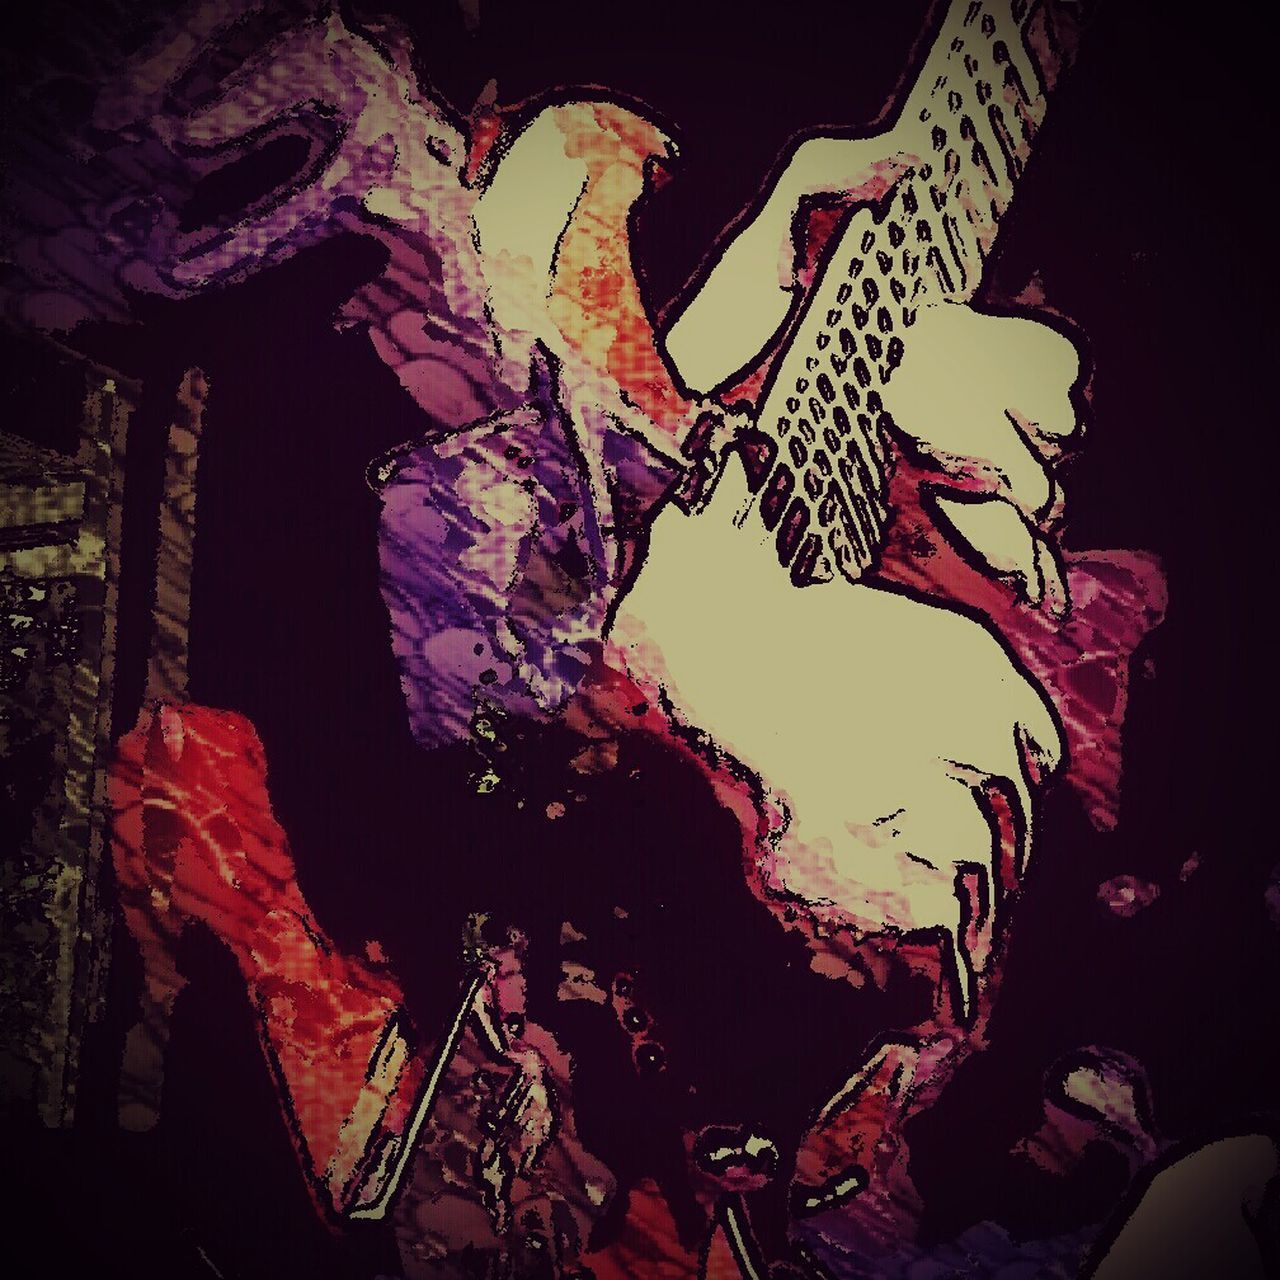 Music Musicians Guitarist Live Music Mixed Media Open Edit Riffs Licks  Jams Capturing Movement Hands At Work